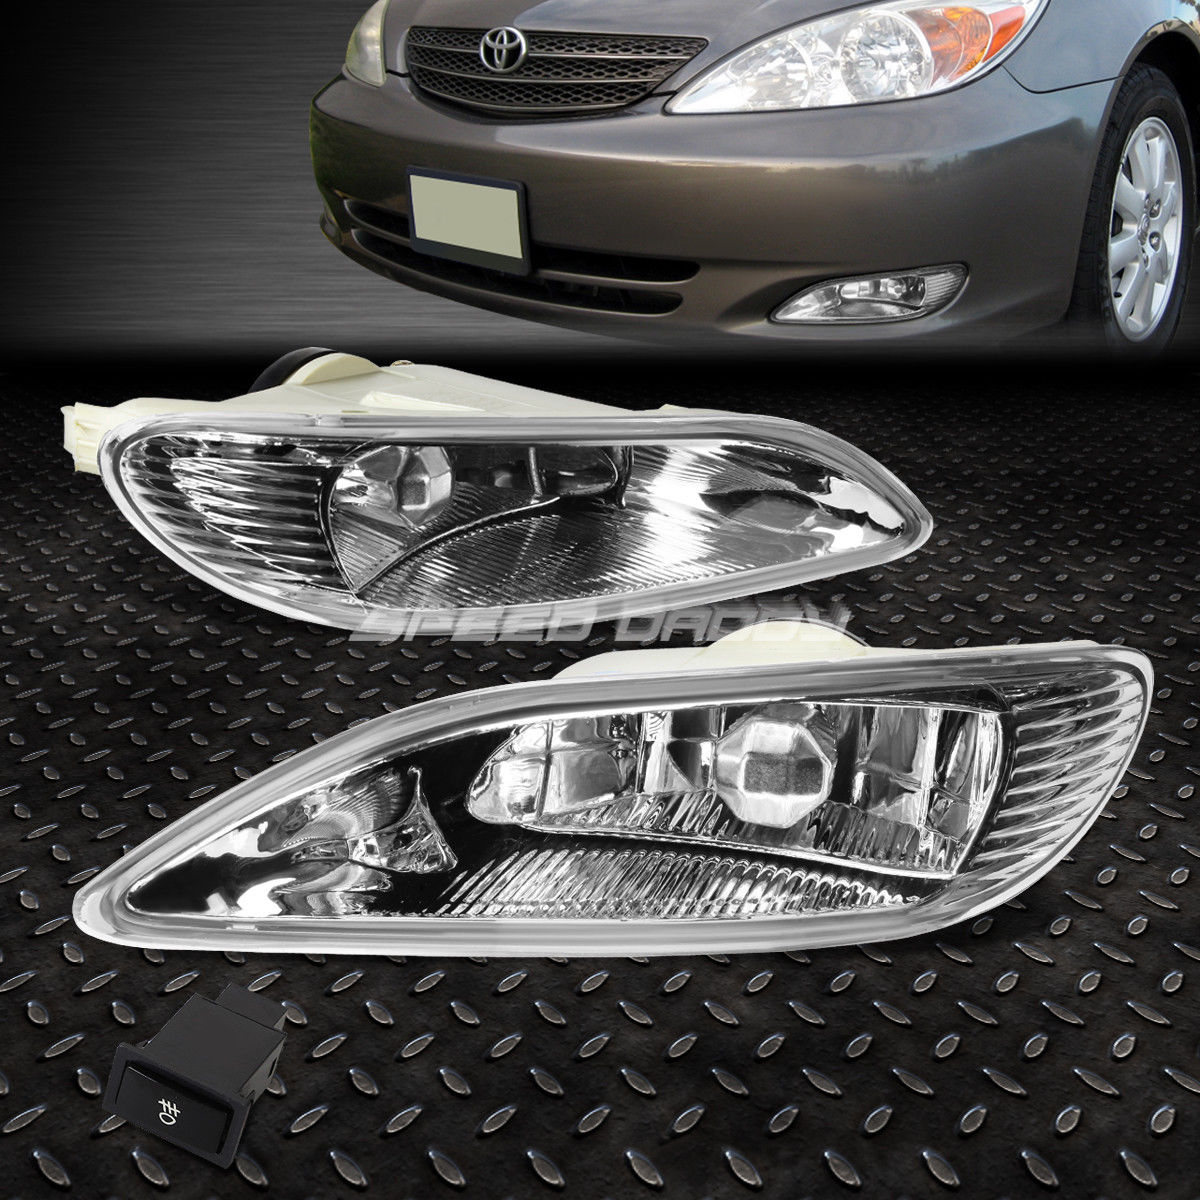 フォグライト FOR TOYOTA 02-04 CAMRY XV30/05-08 COROLLA SDD OE FOG LIGHT(WIRING KIT&SWITCH FOR TOYOTA 02-04 CAMRY XV30 / 05-08 COROLLAはOEM FOG LIGHTを追加します(配線キットamp;スイッチ